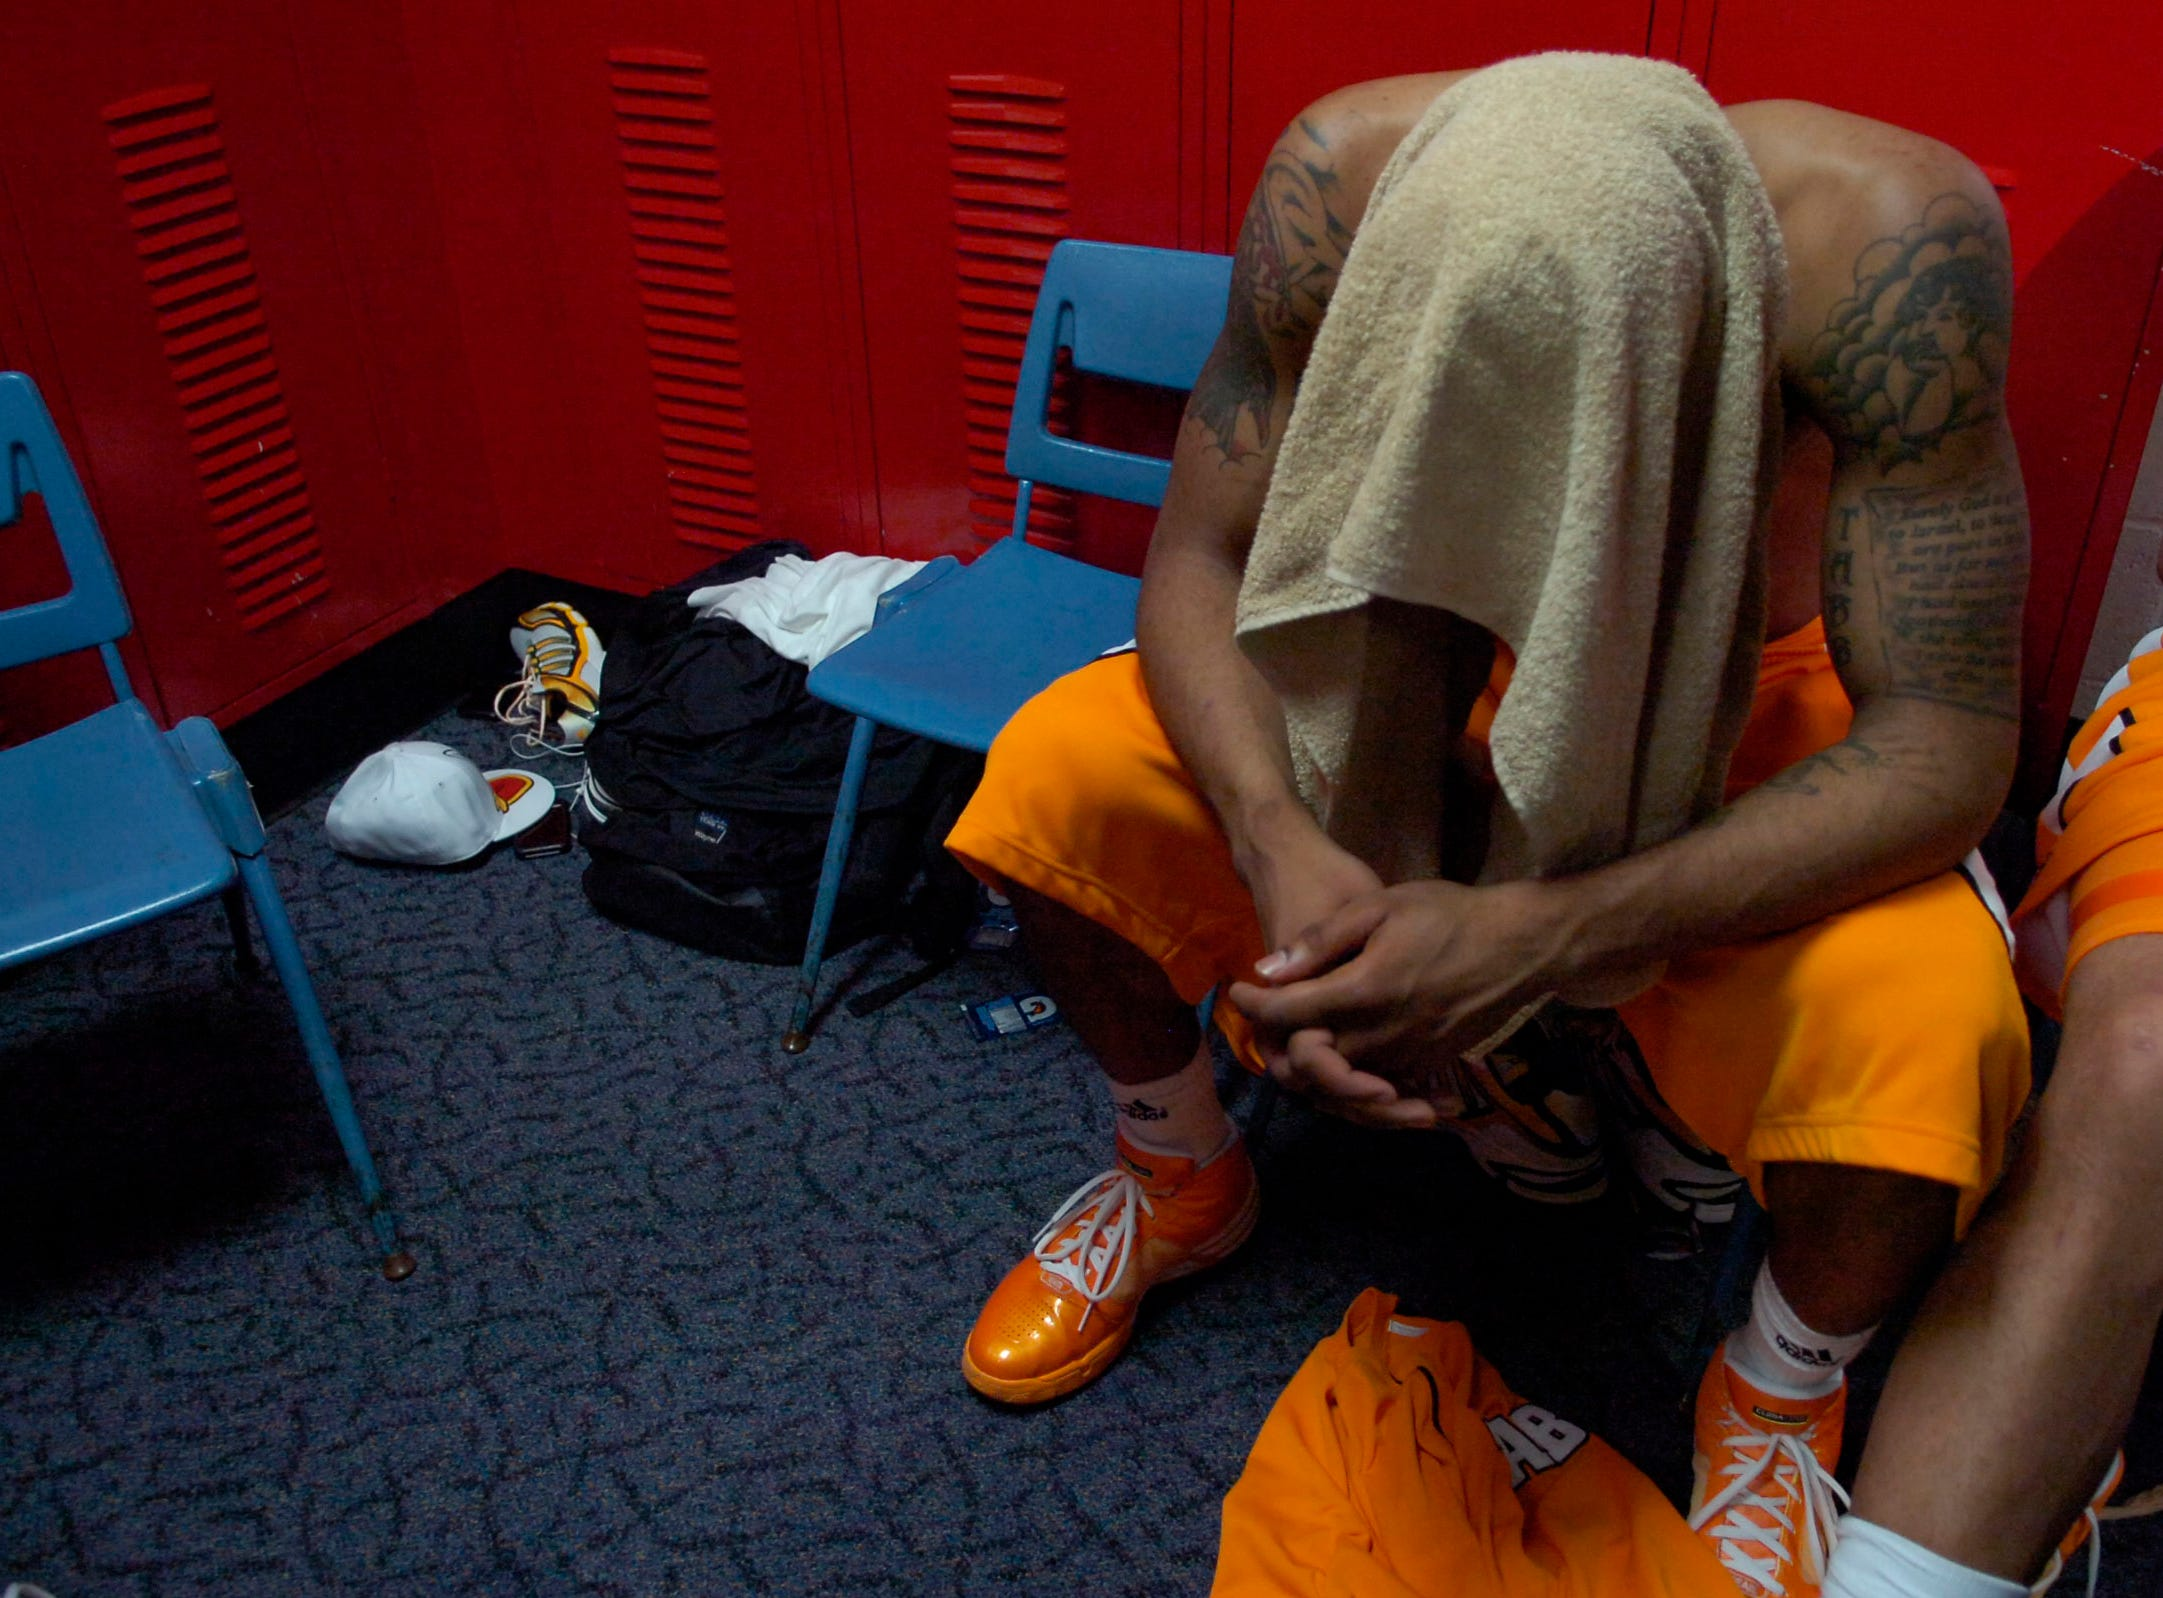 Tennessee's Josh Tabb sits in the locker room after the 77-75 loss to  Oklahoma State in the first round of the 2009 NCAA tournament in Dayton, OH on Friday, ending the Volunteers season.